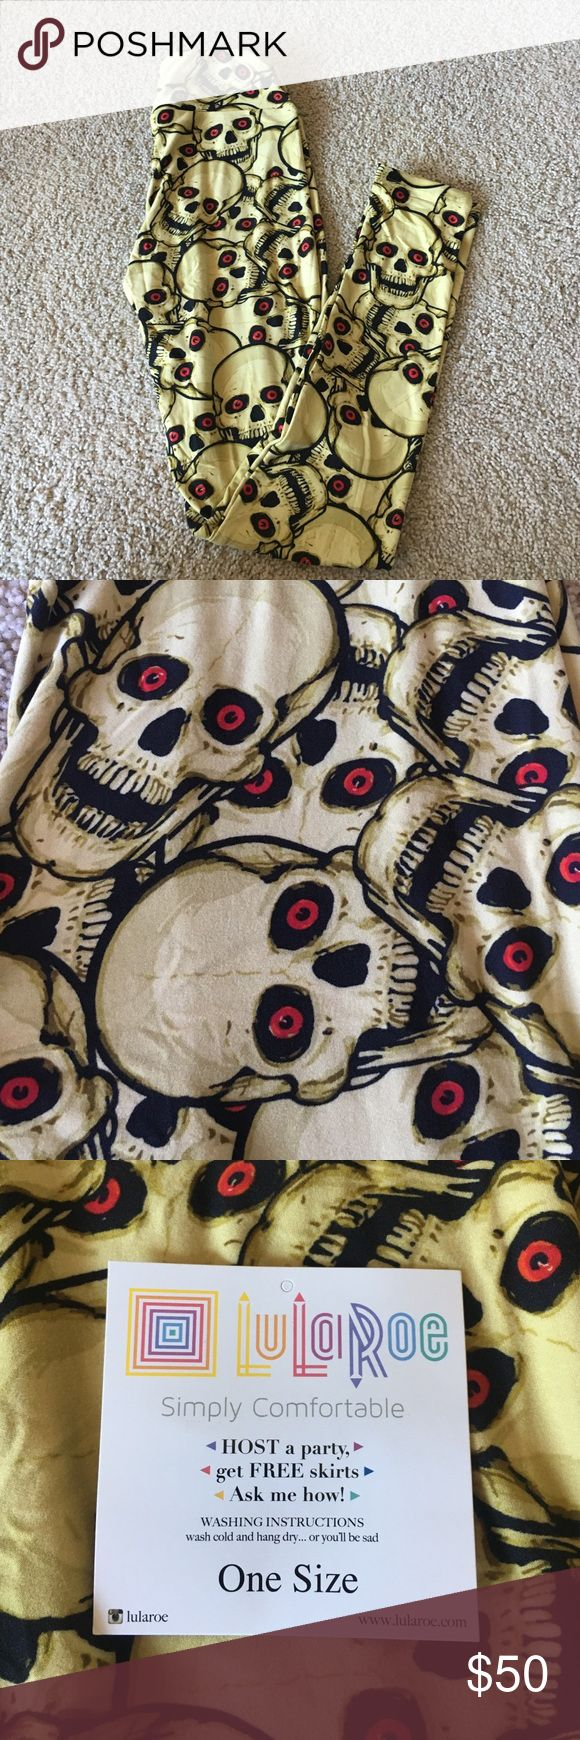 Skeleton LuLaRoe Leggings Fought tooth and nail for two pairs of Halloween leggings.  Stayed up super late, paid more than I should have annnnd decided that this pair was too busy for a boring Mom like me to pull off.  Love my Ghost leggings though!  Not a flipper at all, but I'd love to at least get my money back...since my time won't ever come back (sorry for cereal for dinner kids). LuLaRoe Pants Leggings